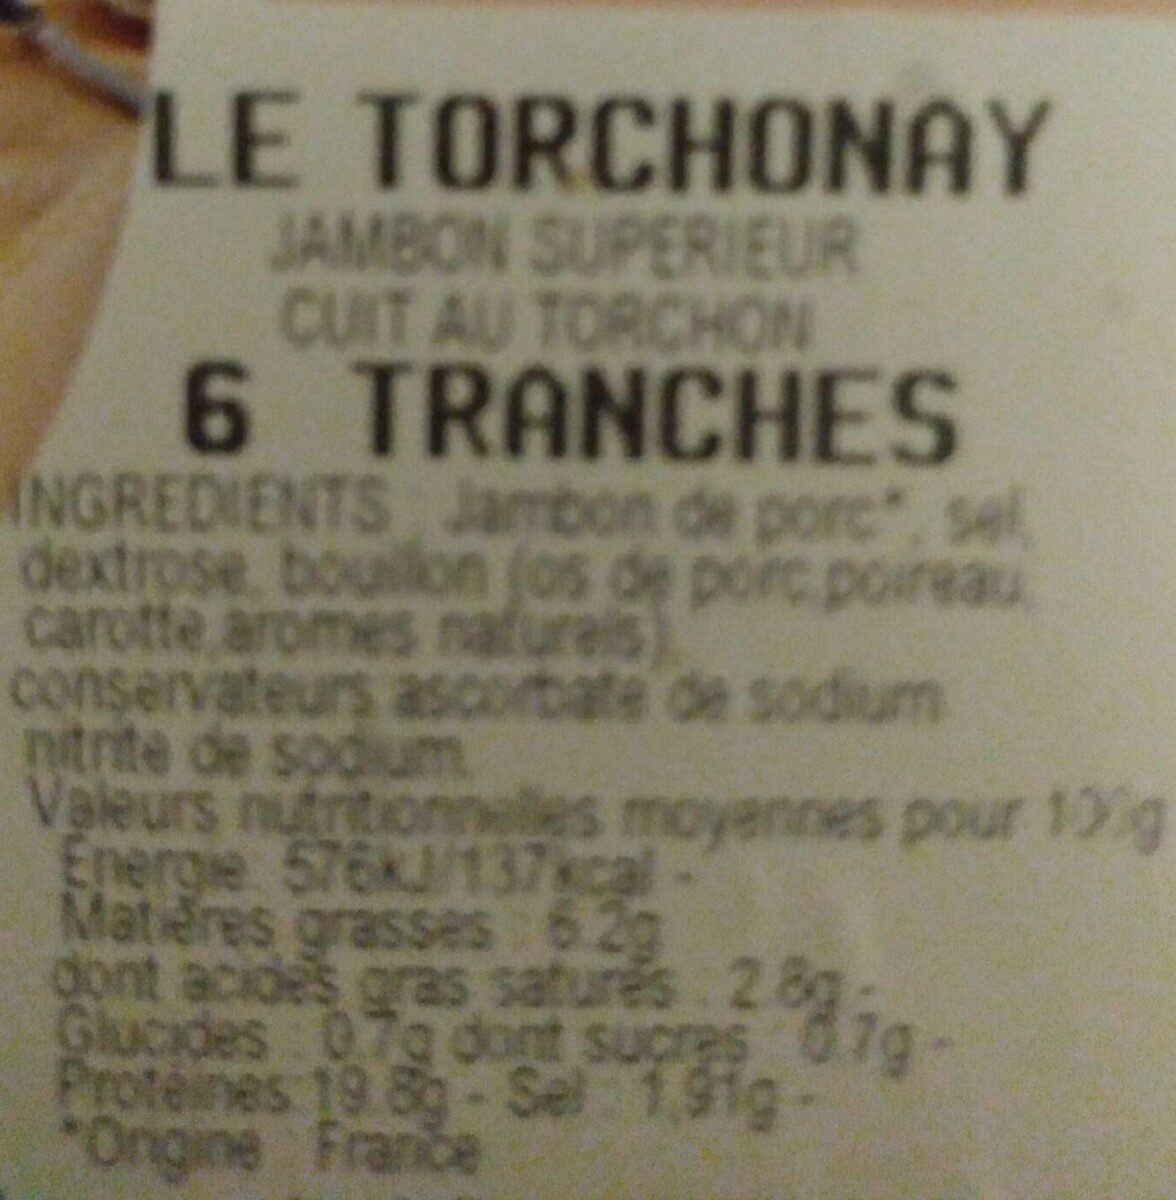 Le torchonay 6 tranches - Nutrition facts